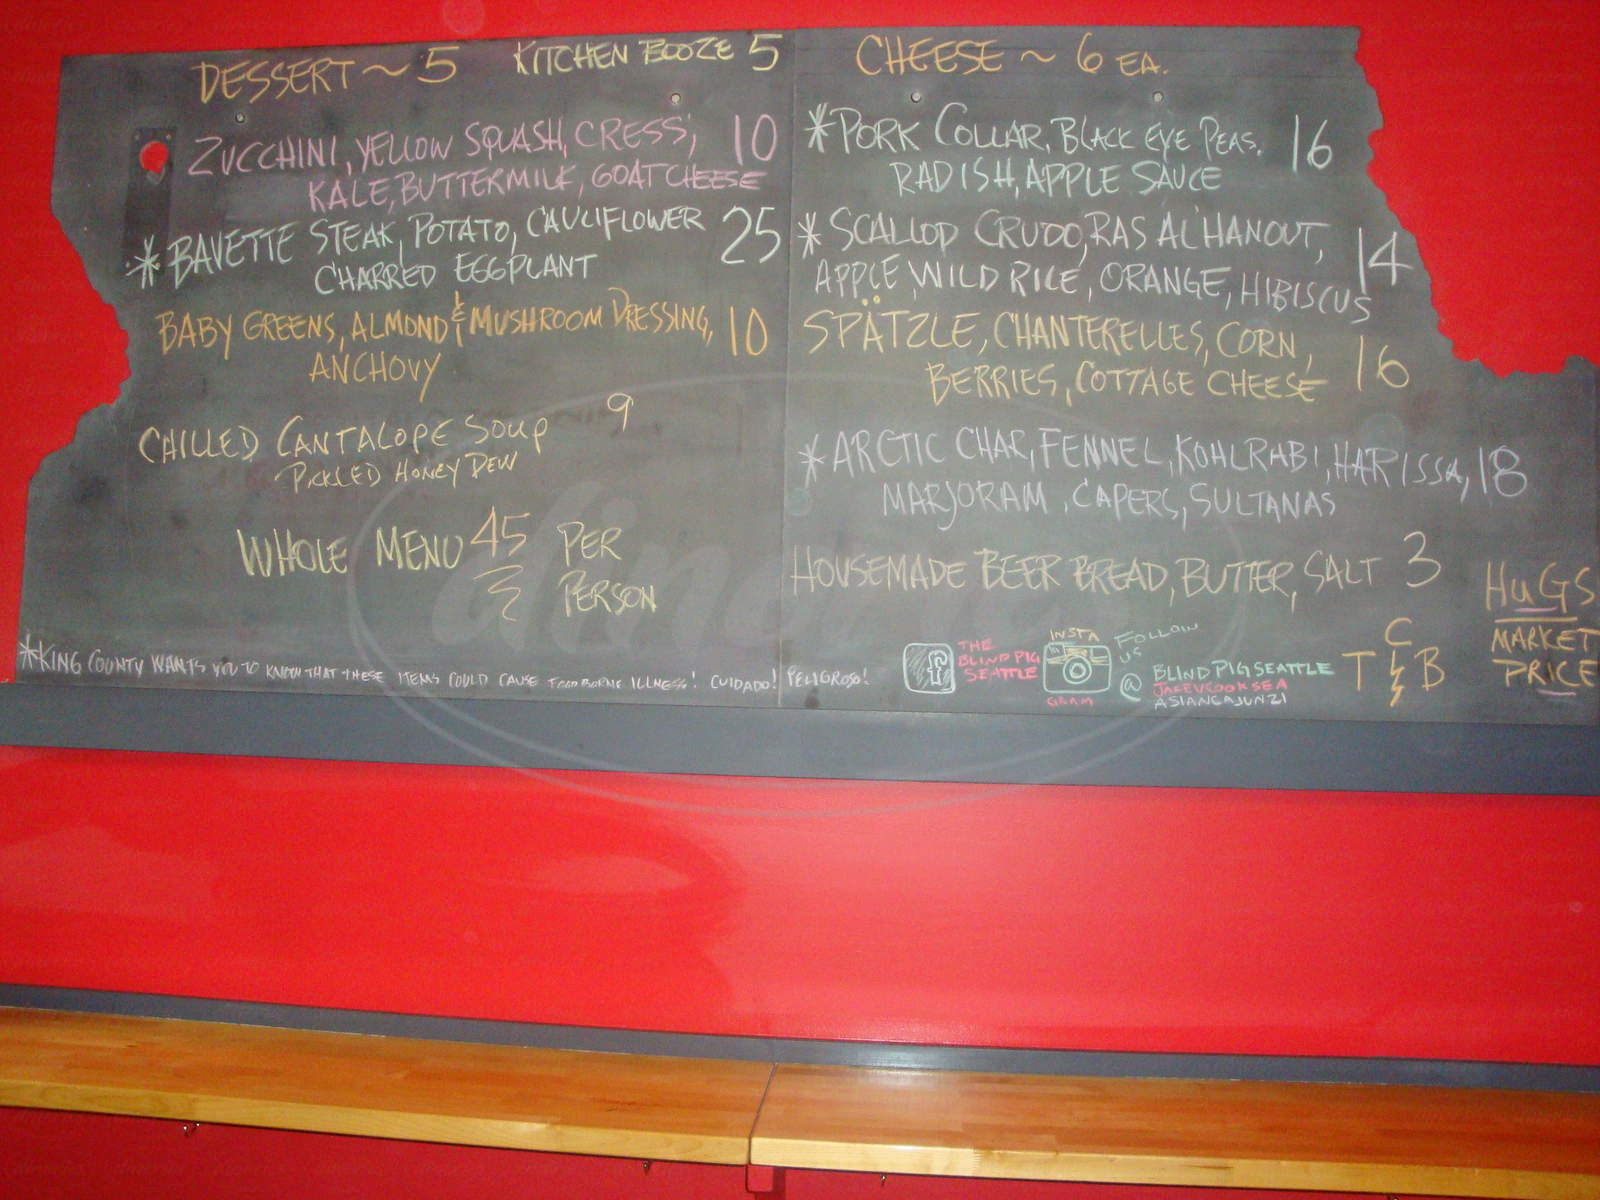 menu for Blind Pig Bistro